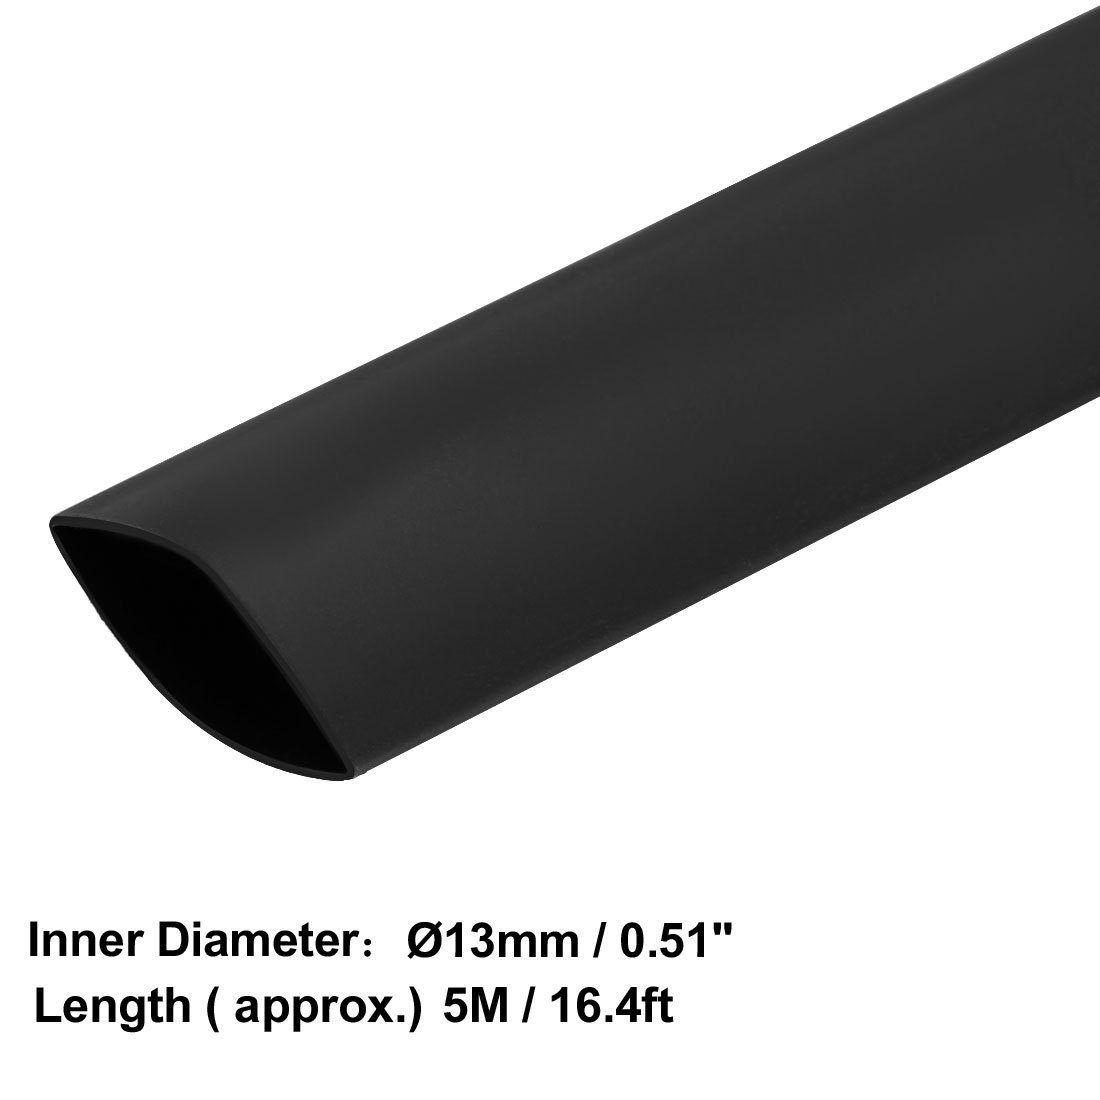 uxcell/® Heat Shrink Tube 2:1 Electrical Insulation Tube Wire Cable Tubing Sleeving Wrap Black 13mm Diameter 10m Length